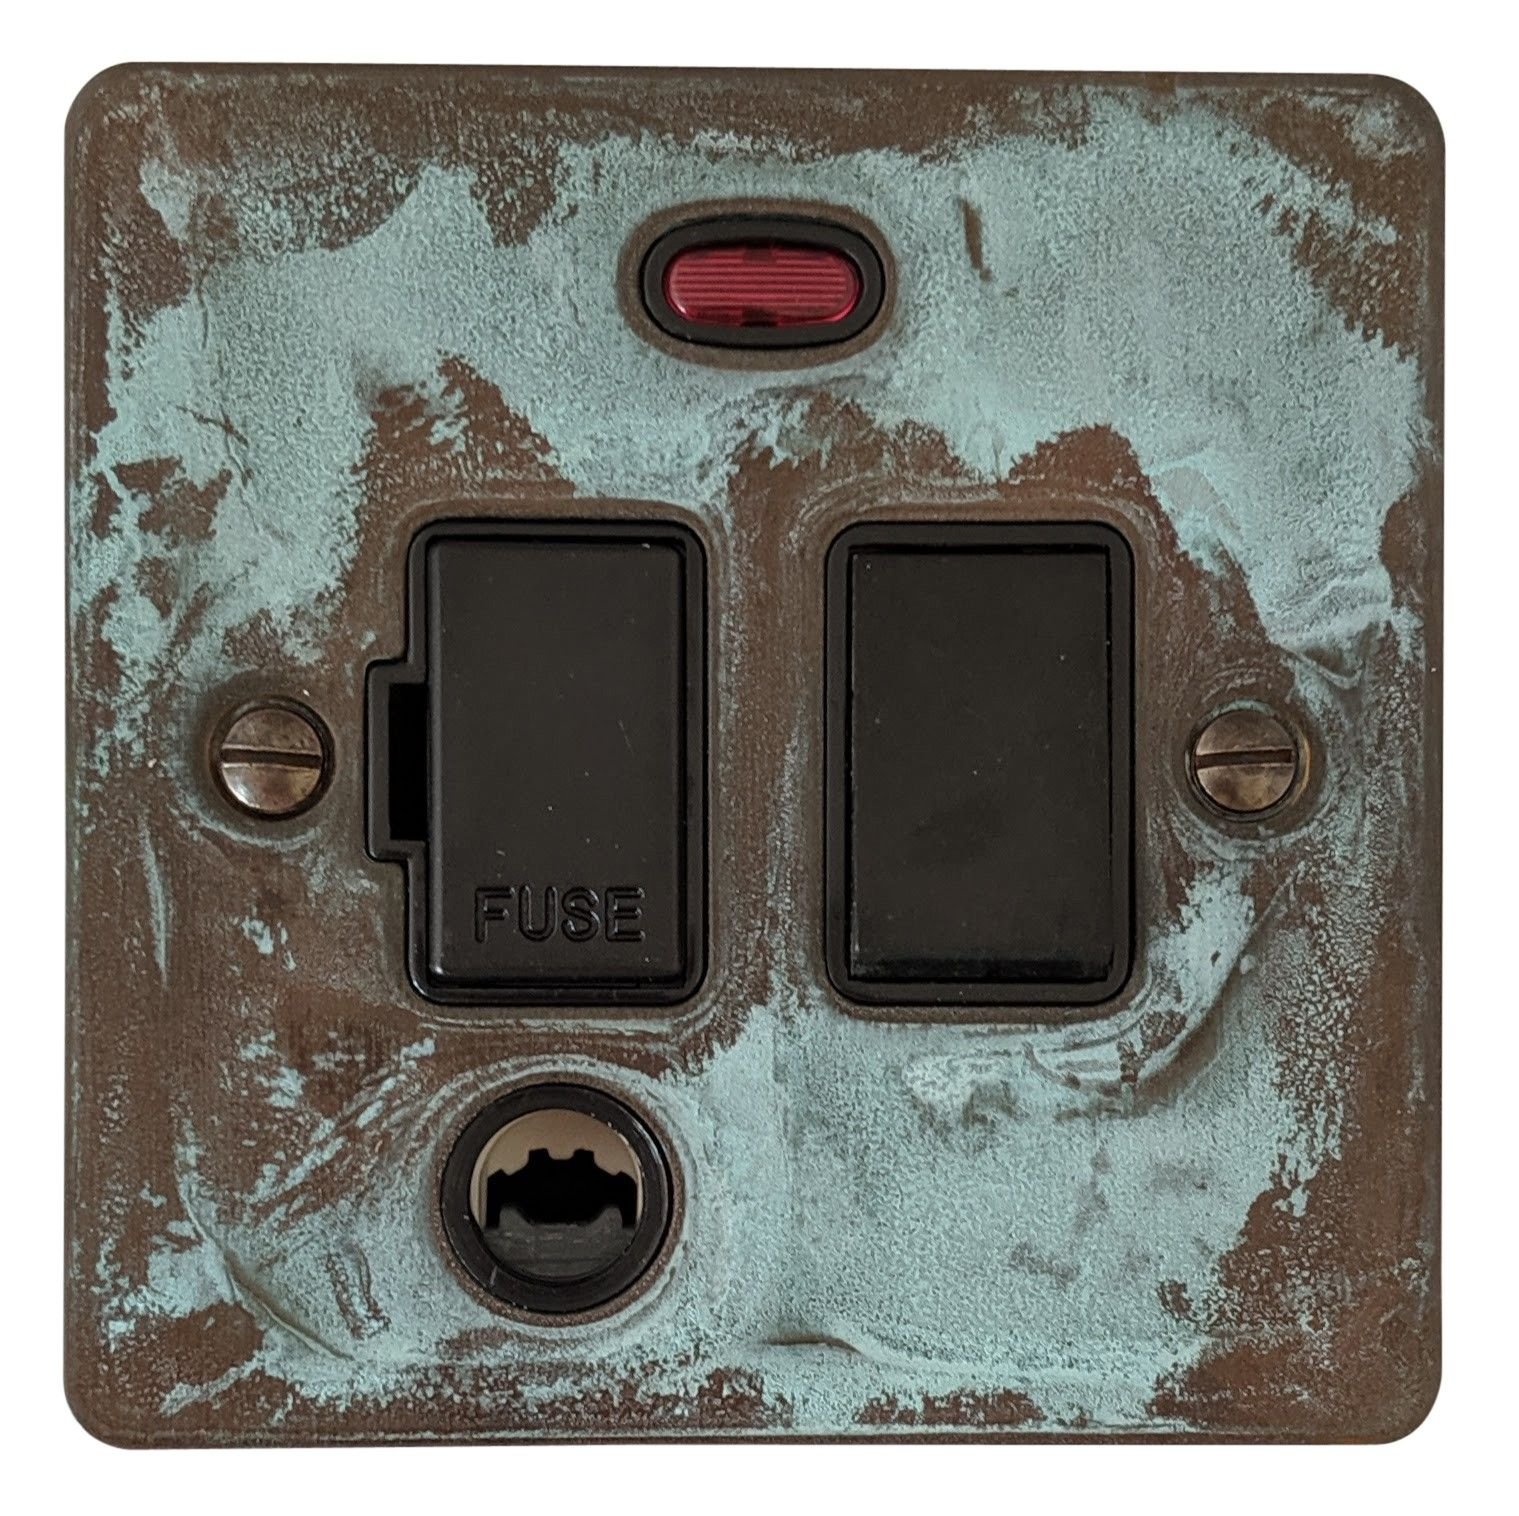 G&H FV77B Flat Plate Verdigris 1 Gang Fused Spur 13A Switched & Flex Outlet & Neon